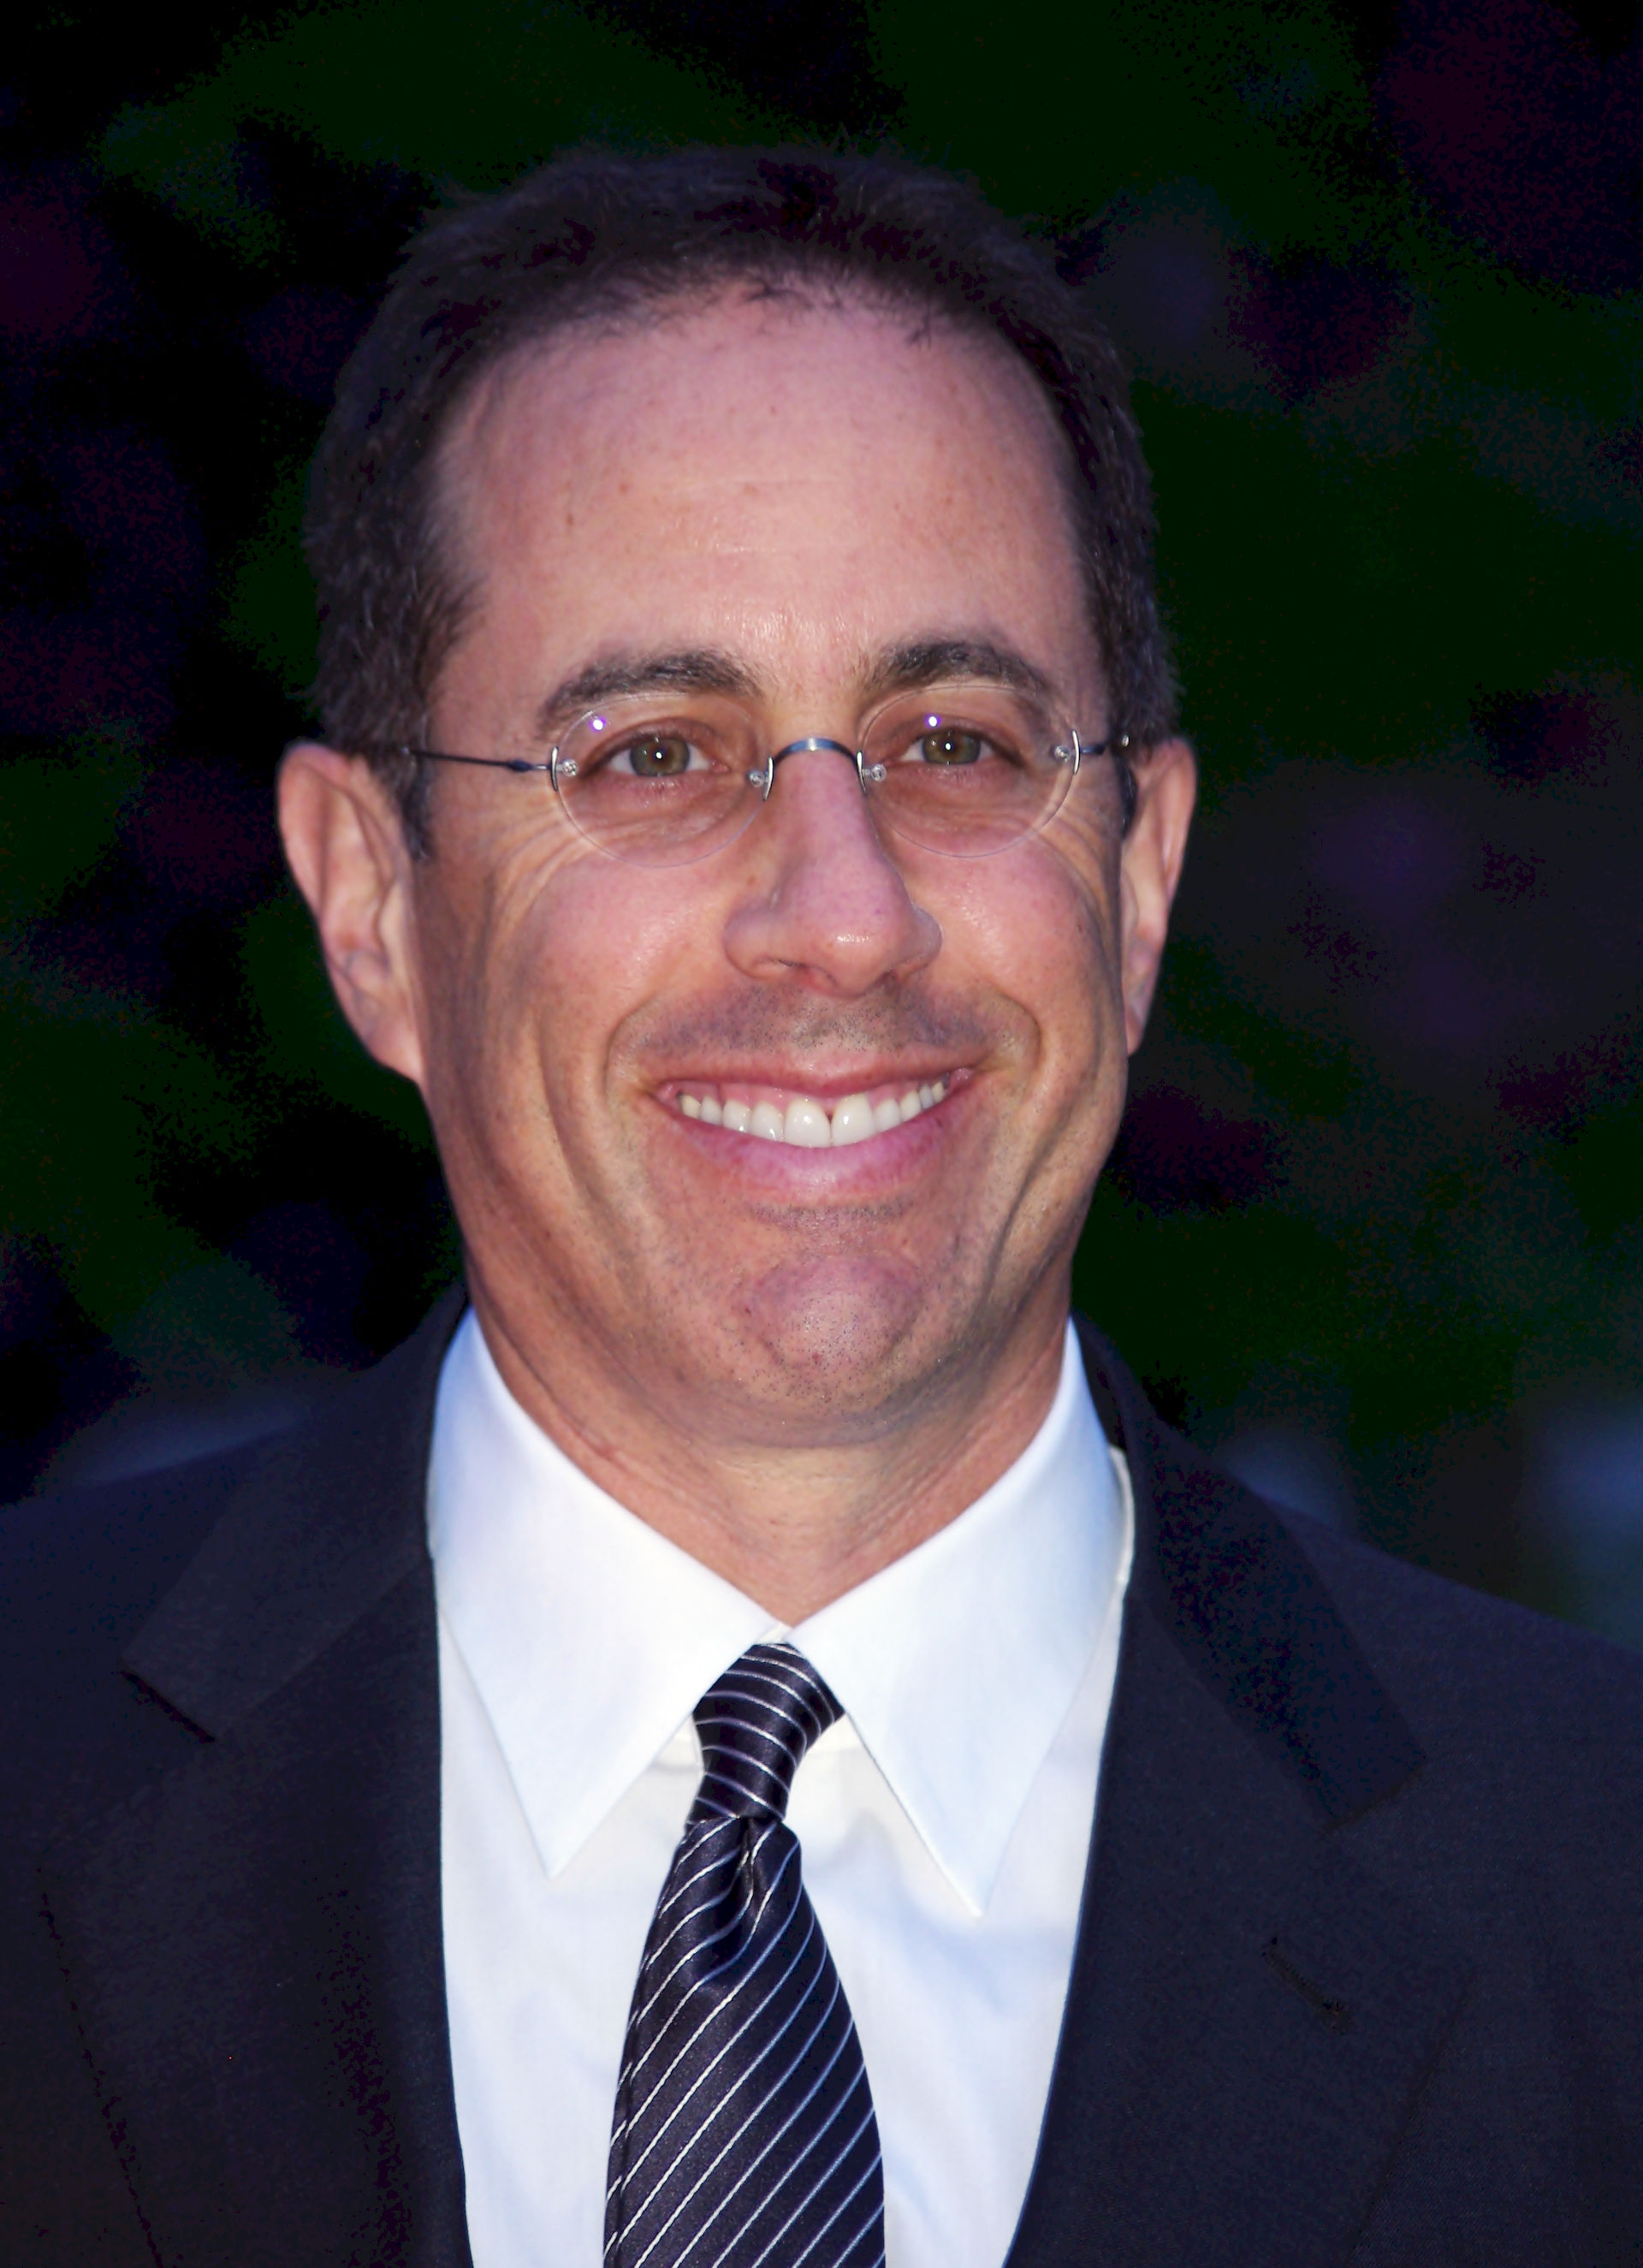 Photo of Jerry Seinfeld: American comedian and actor